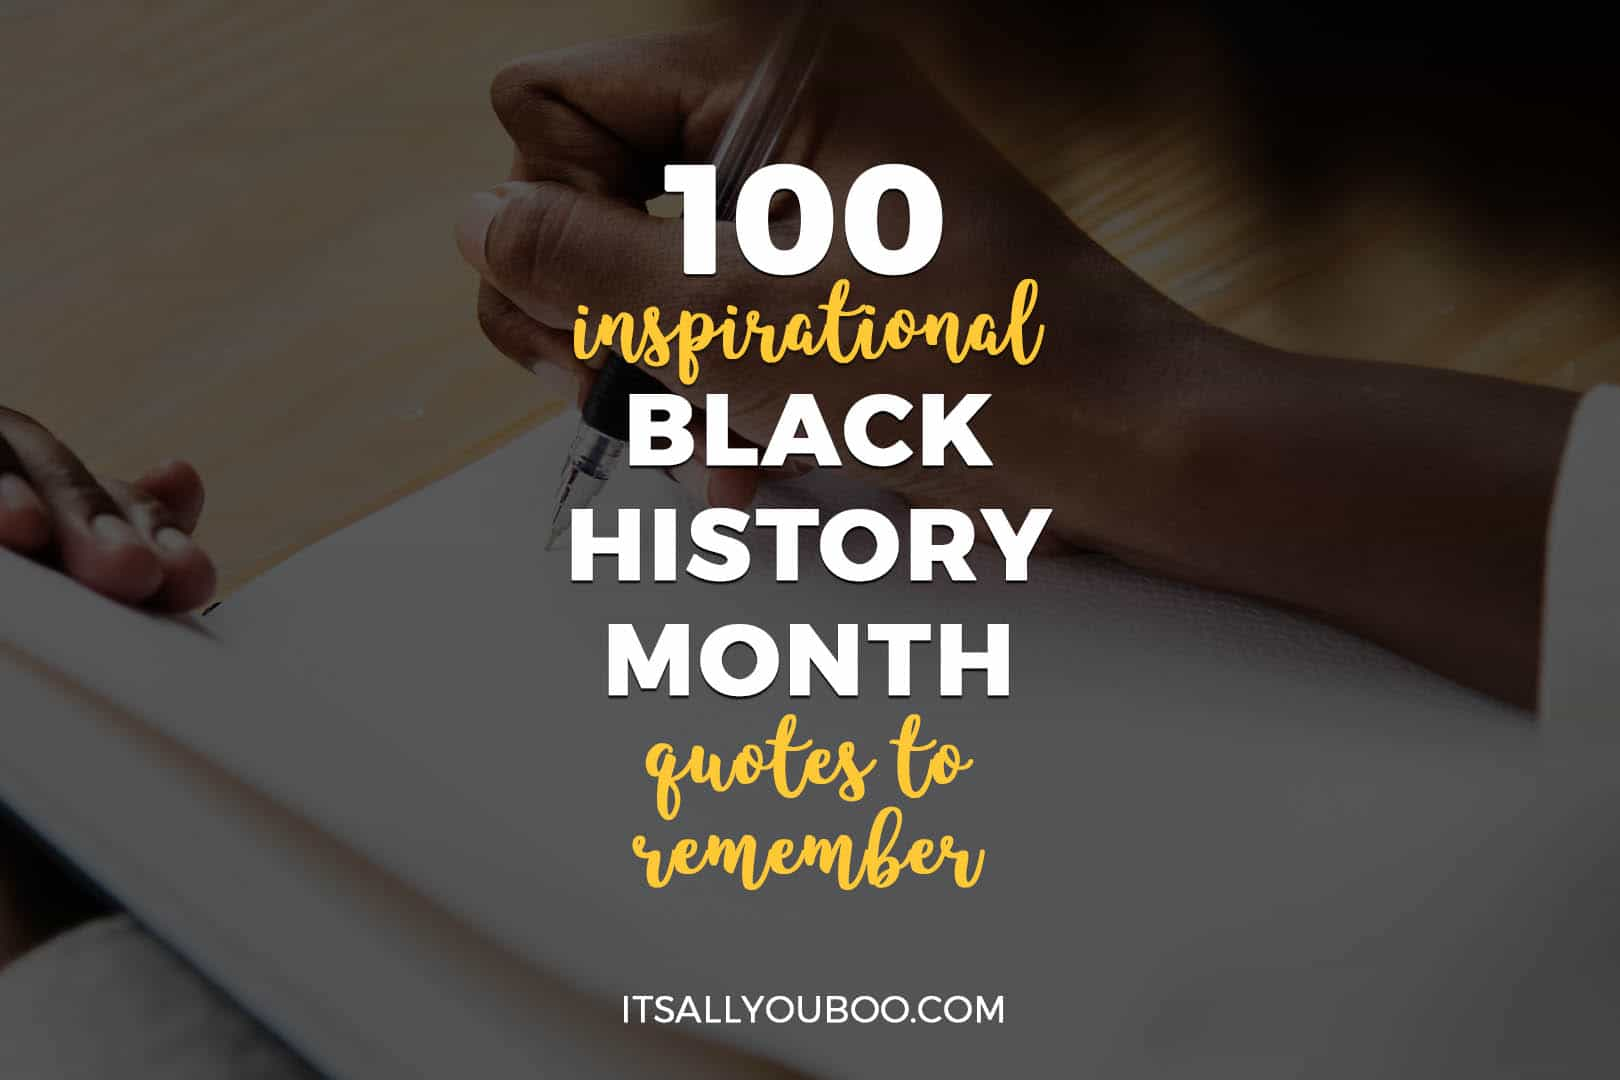 100 Inspirational Black History Month Quotes